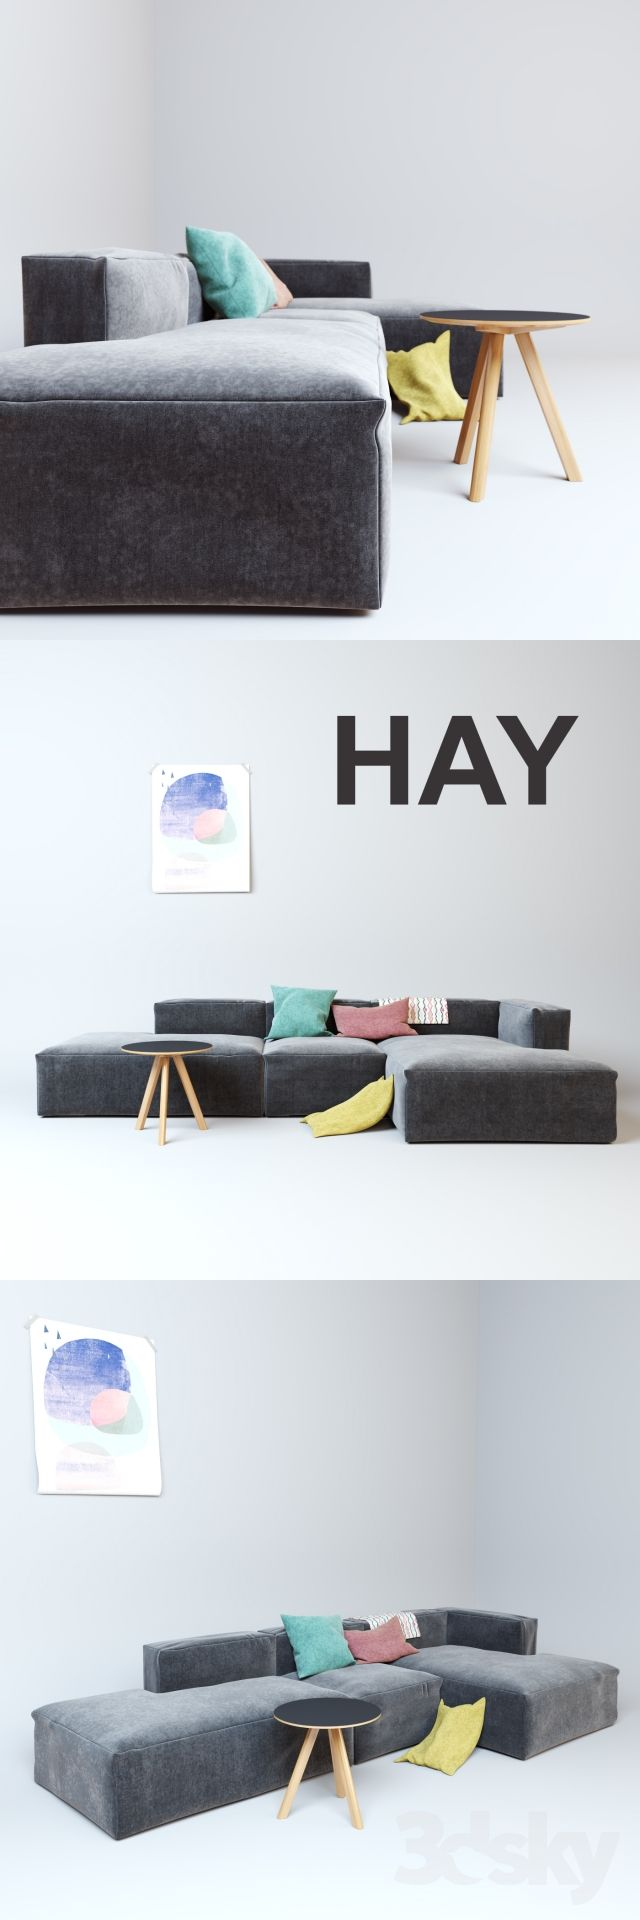 3d models: Sofa - HAY Mags Soft Sofa - this is perfect for the basement. Kids can rearrange as needed